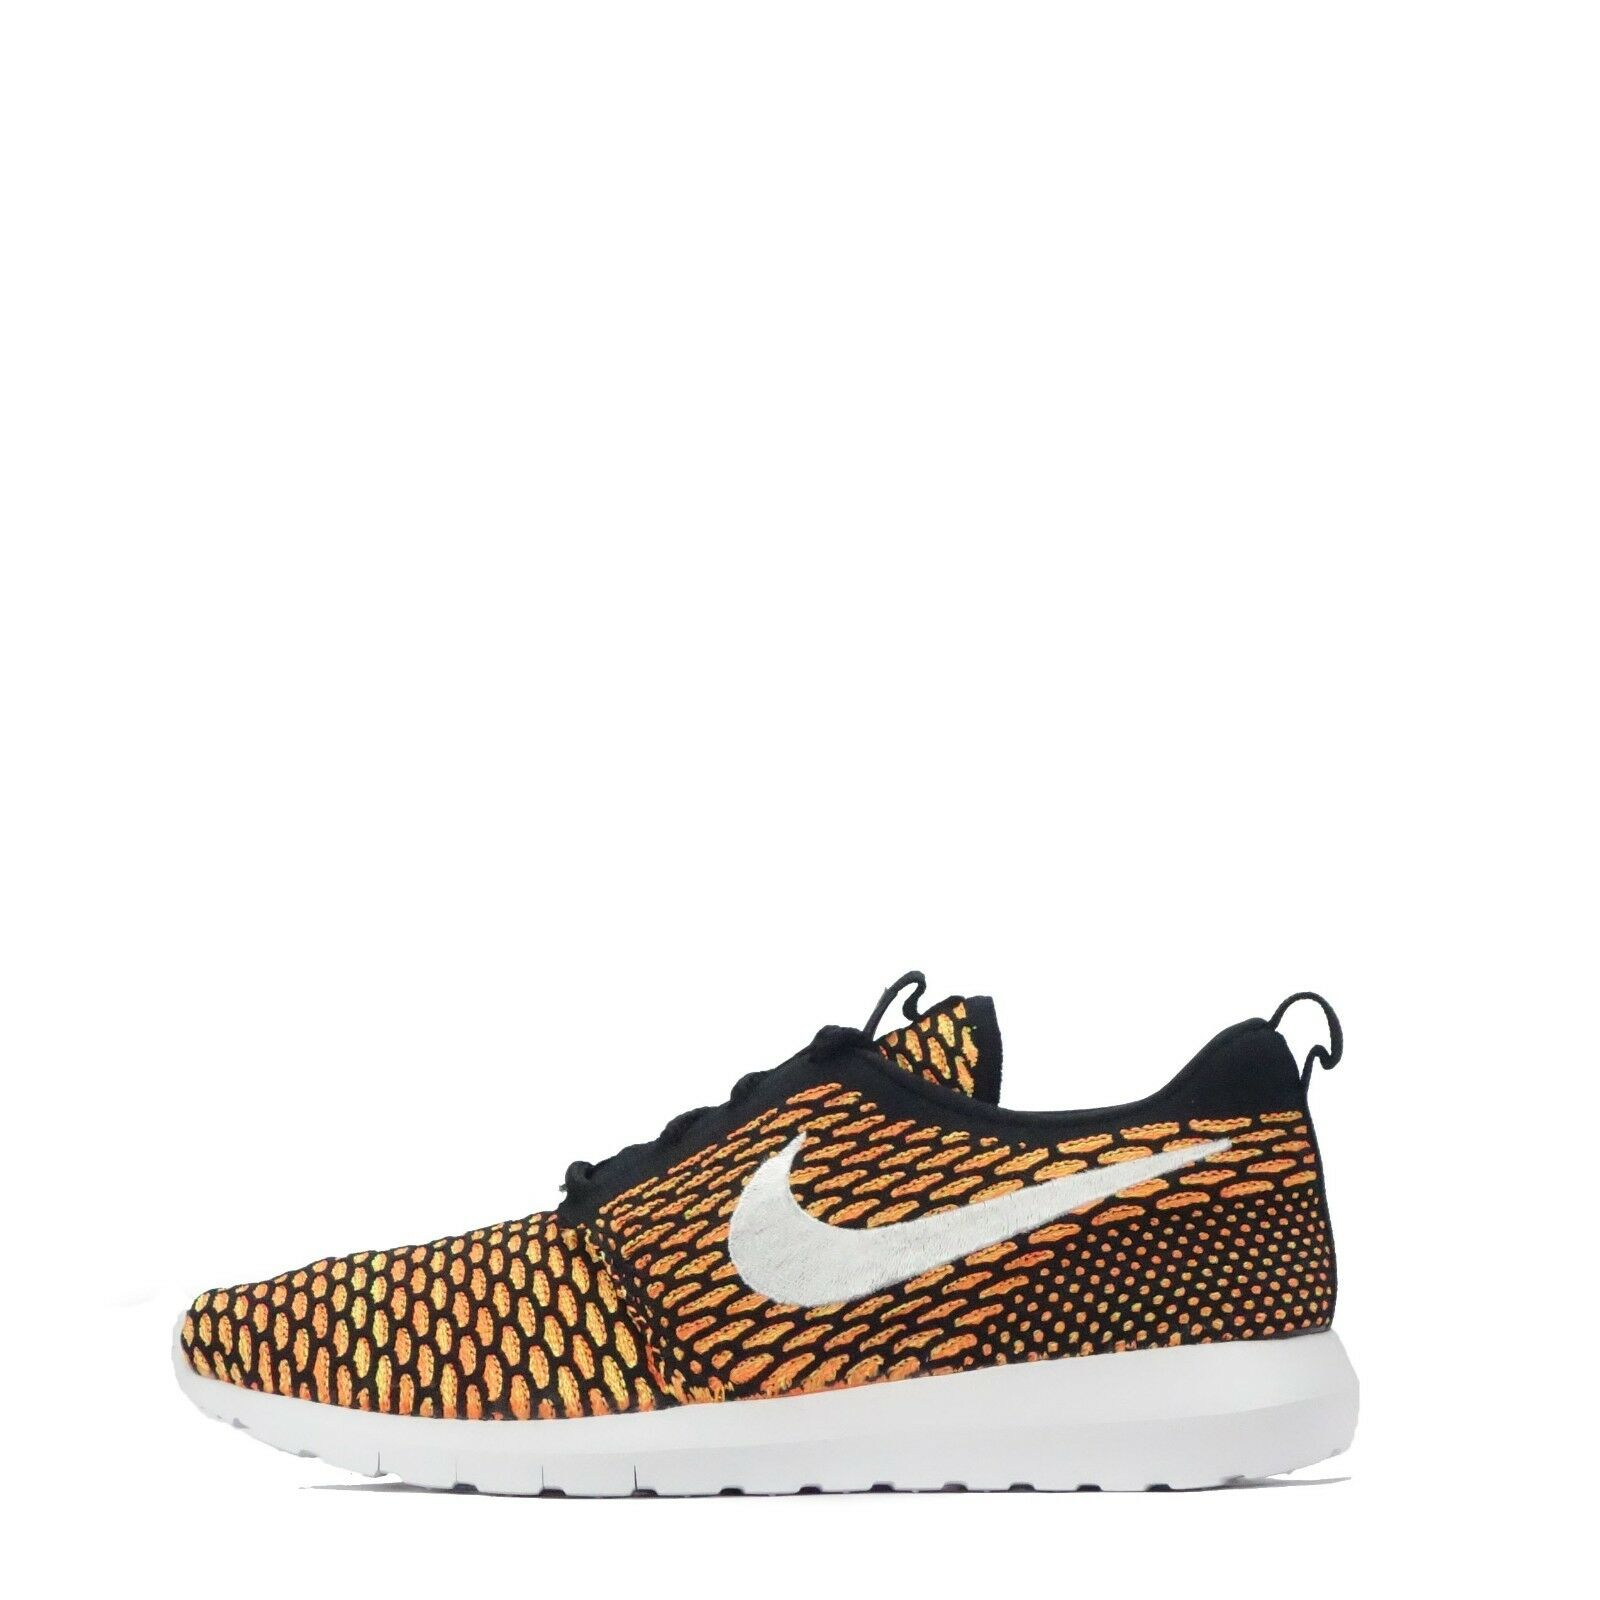 Nike Roshe One Flyknit NM Natural Motion zapatos Sportive da hombres negro Arancione